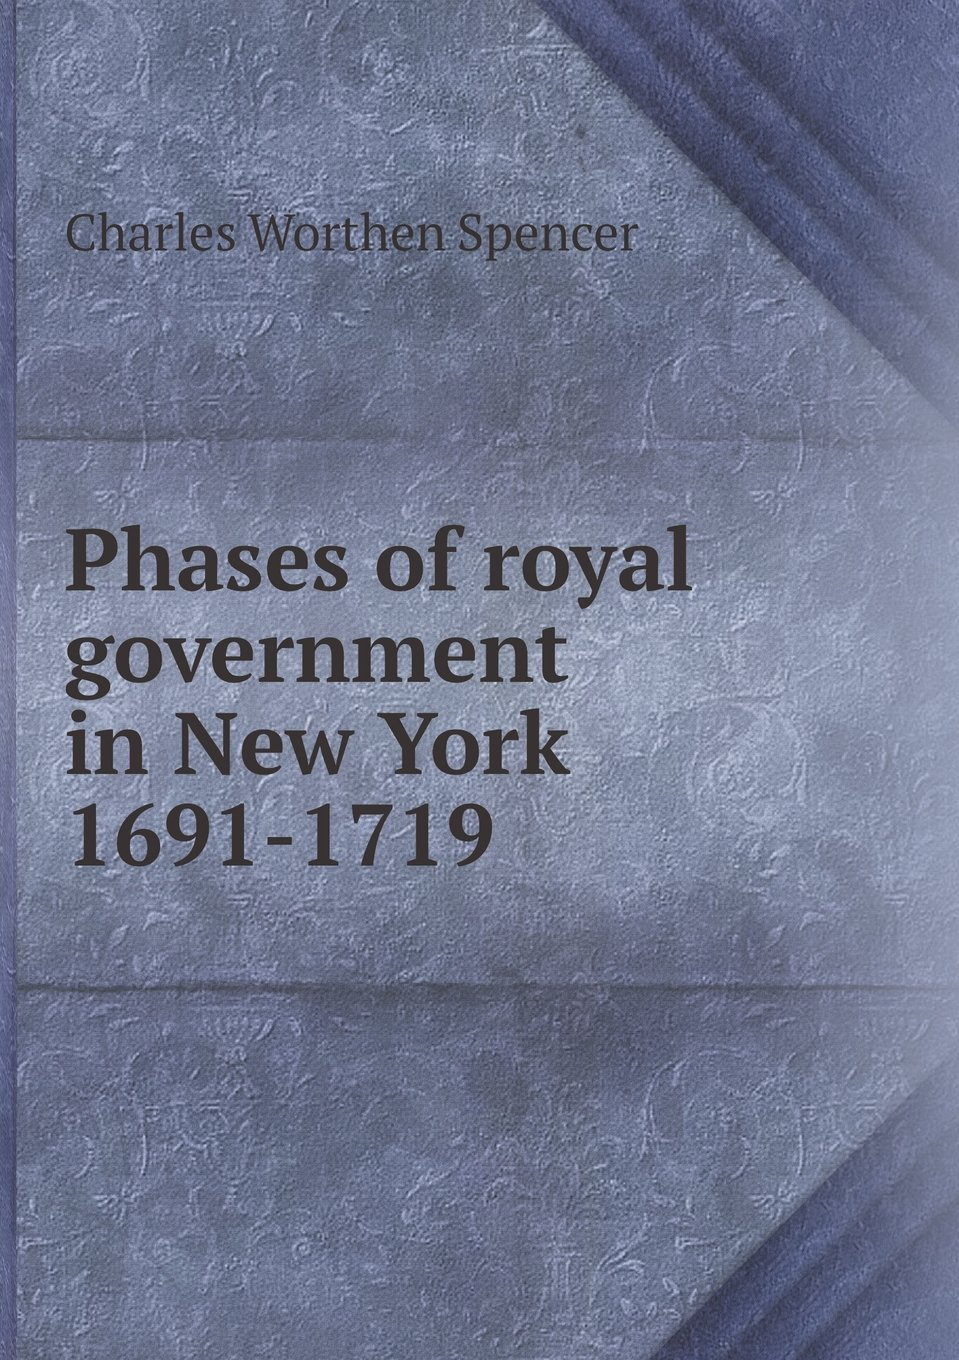 Phases of royal government in New York 1691-1719 pdf